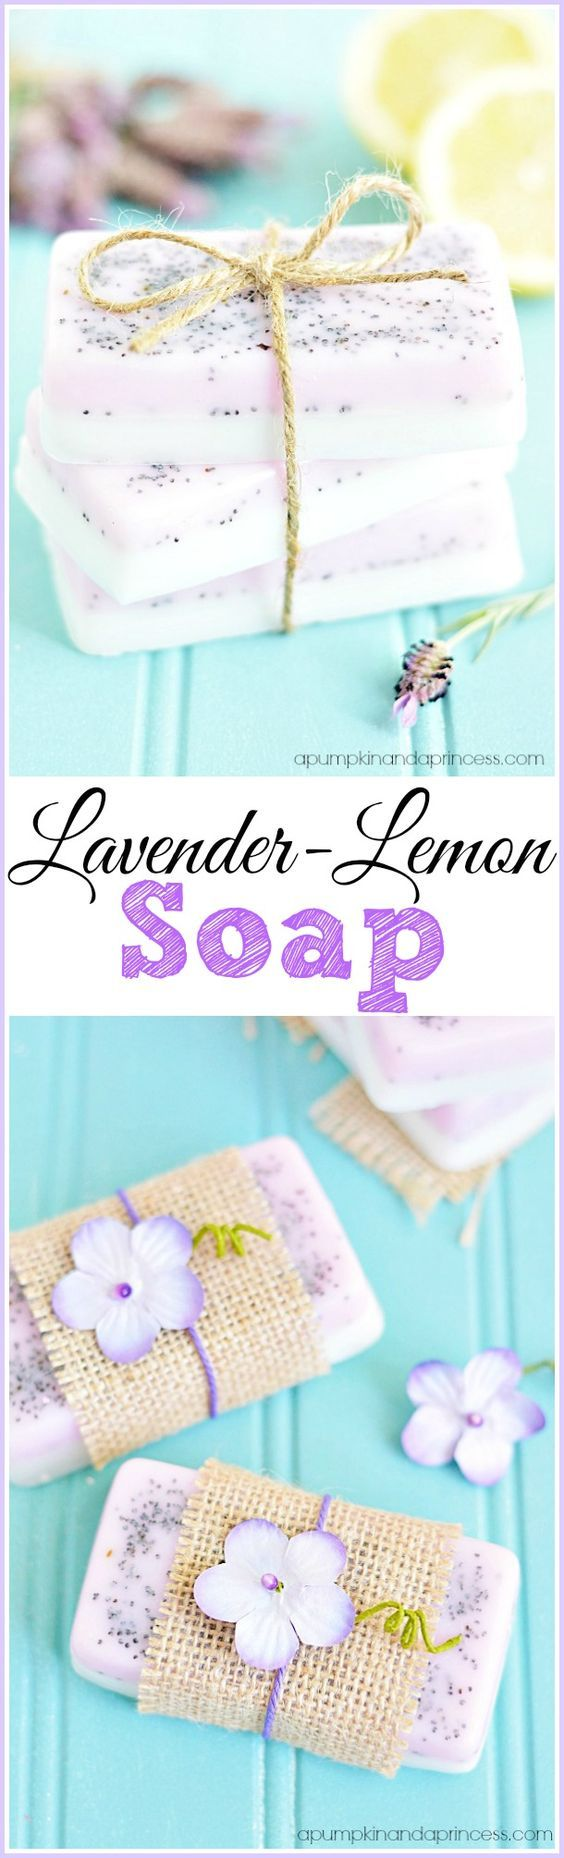 Homemade Lavender Lemon Soap - Mother's Day Gifts: